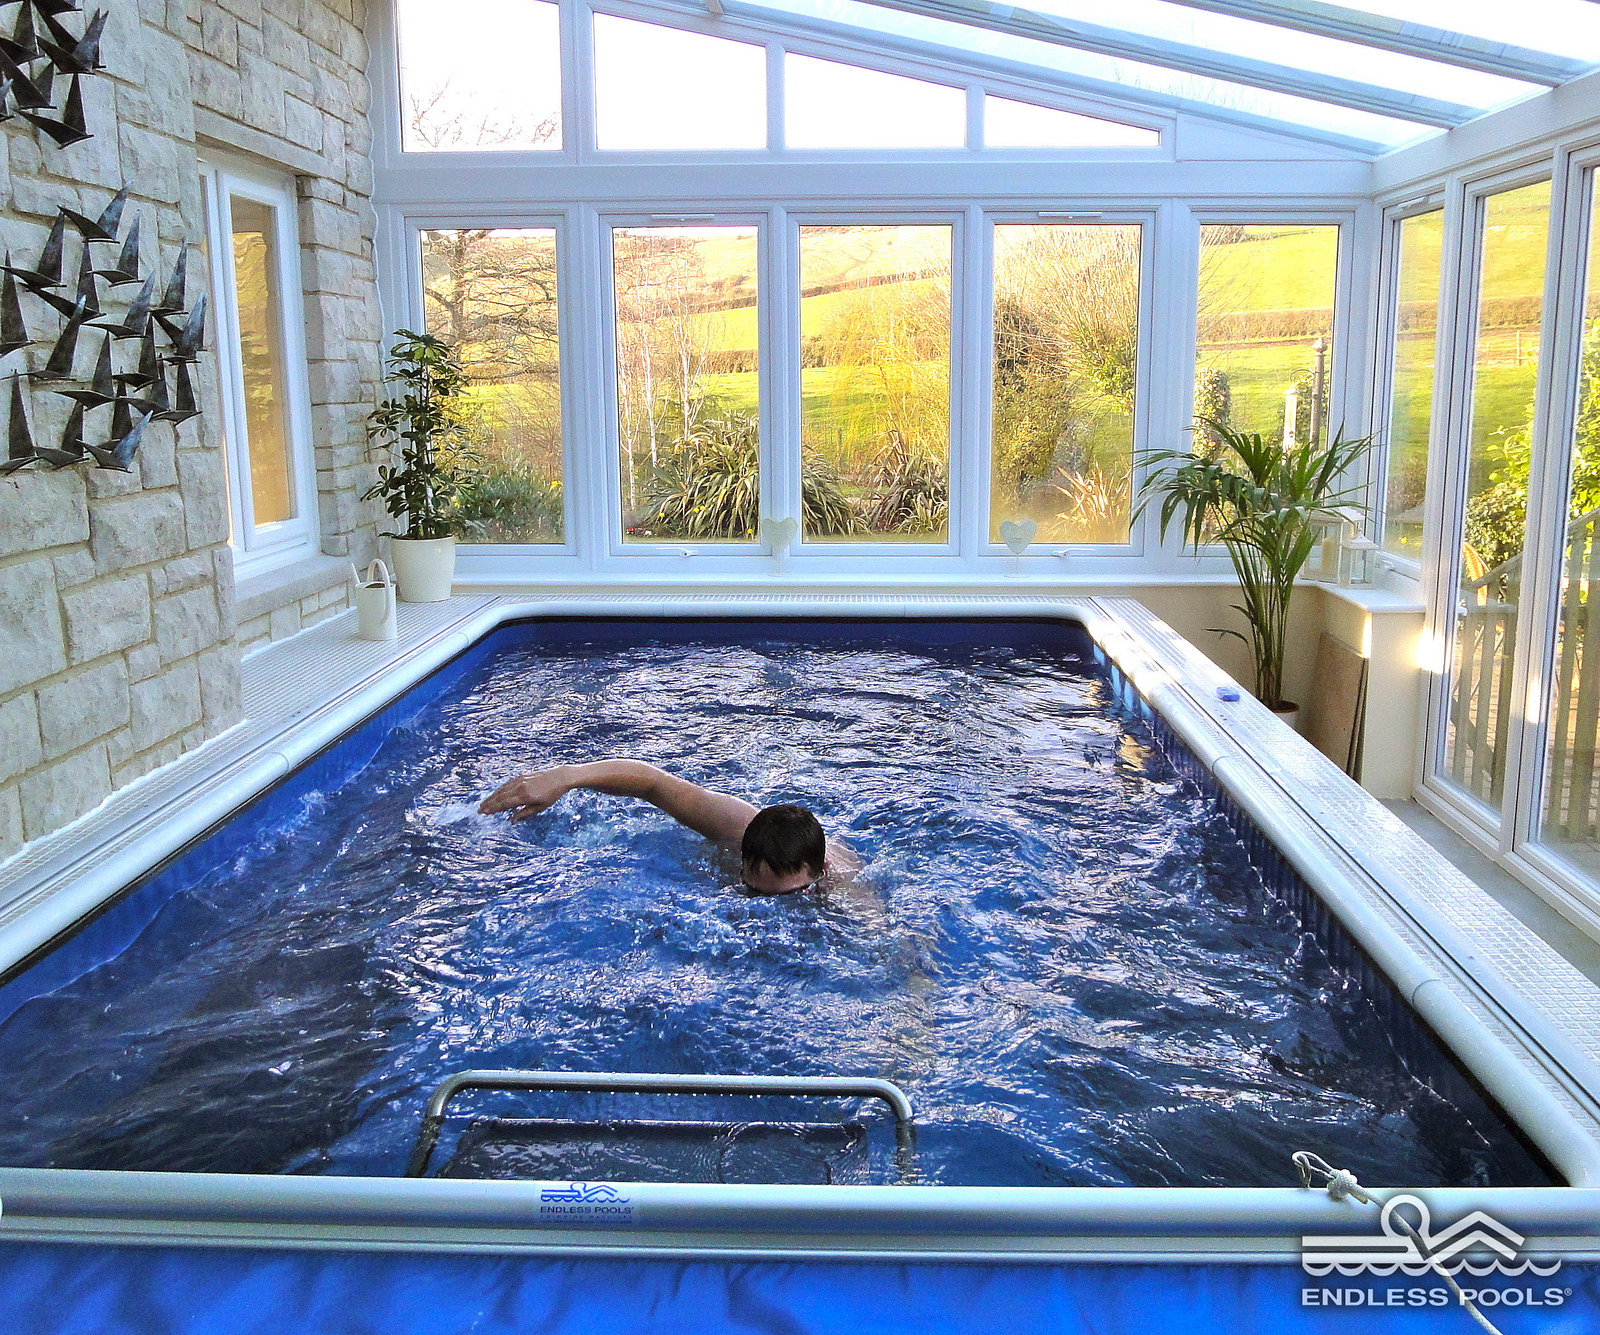 Small Room Addition Ideas: Picture Of Even A Small Sunroom Extension Could Fit A Pool